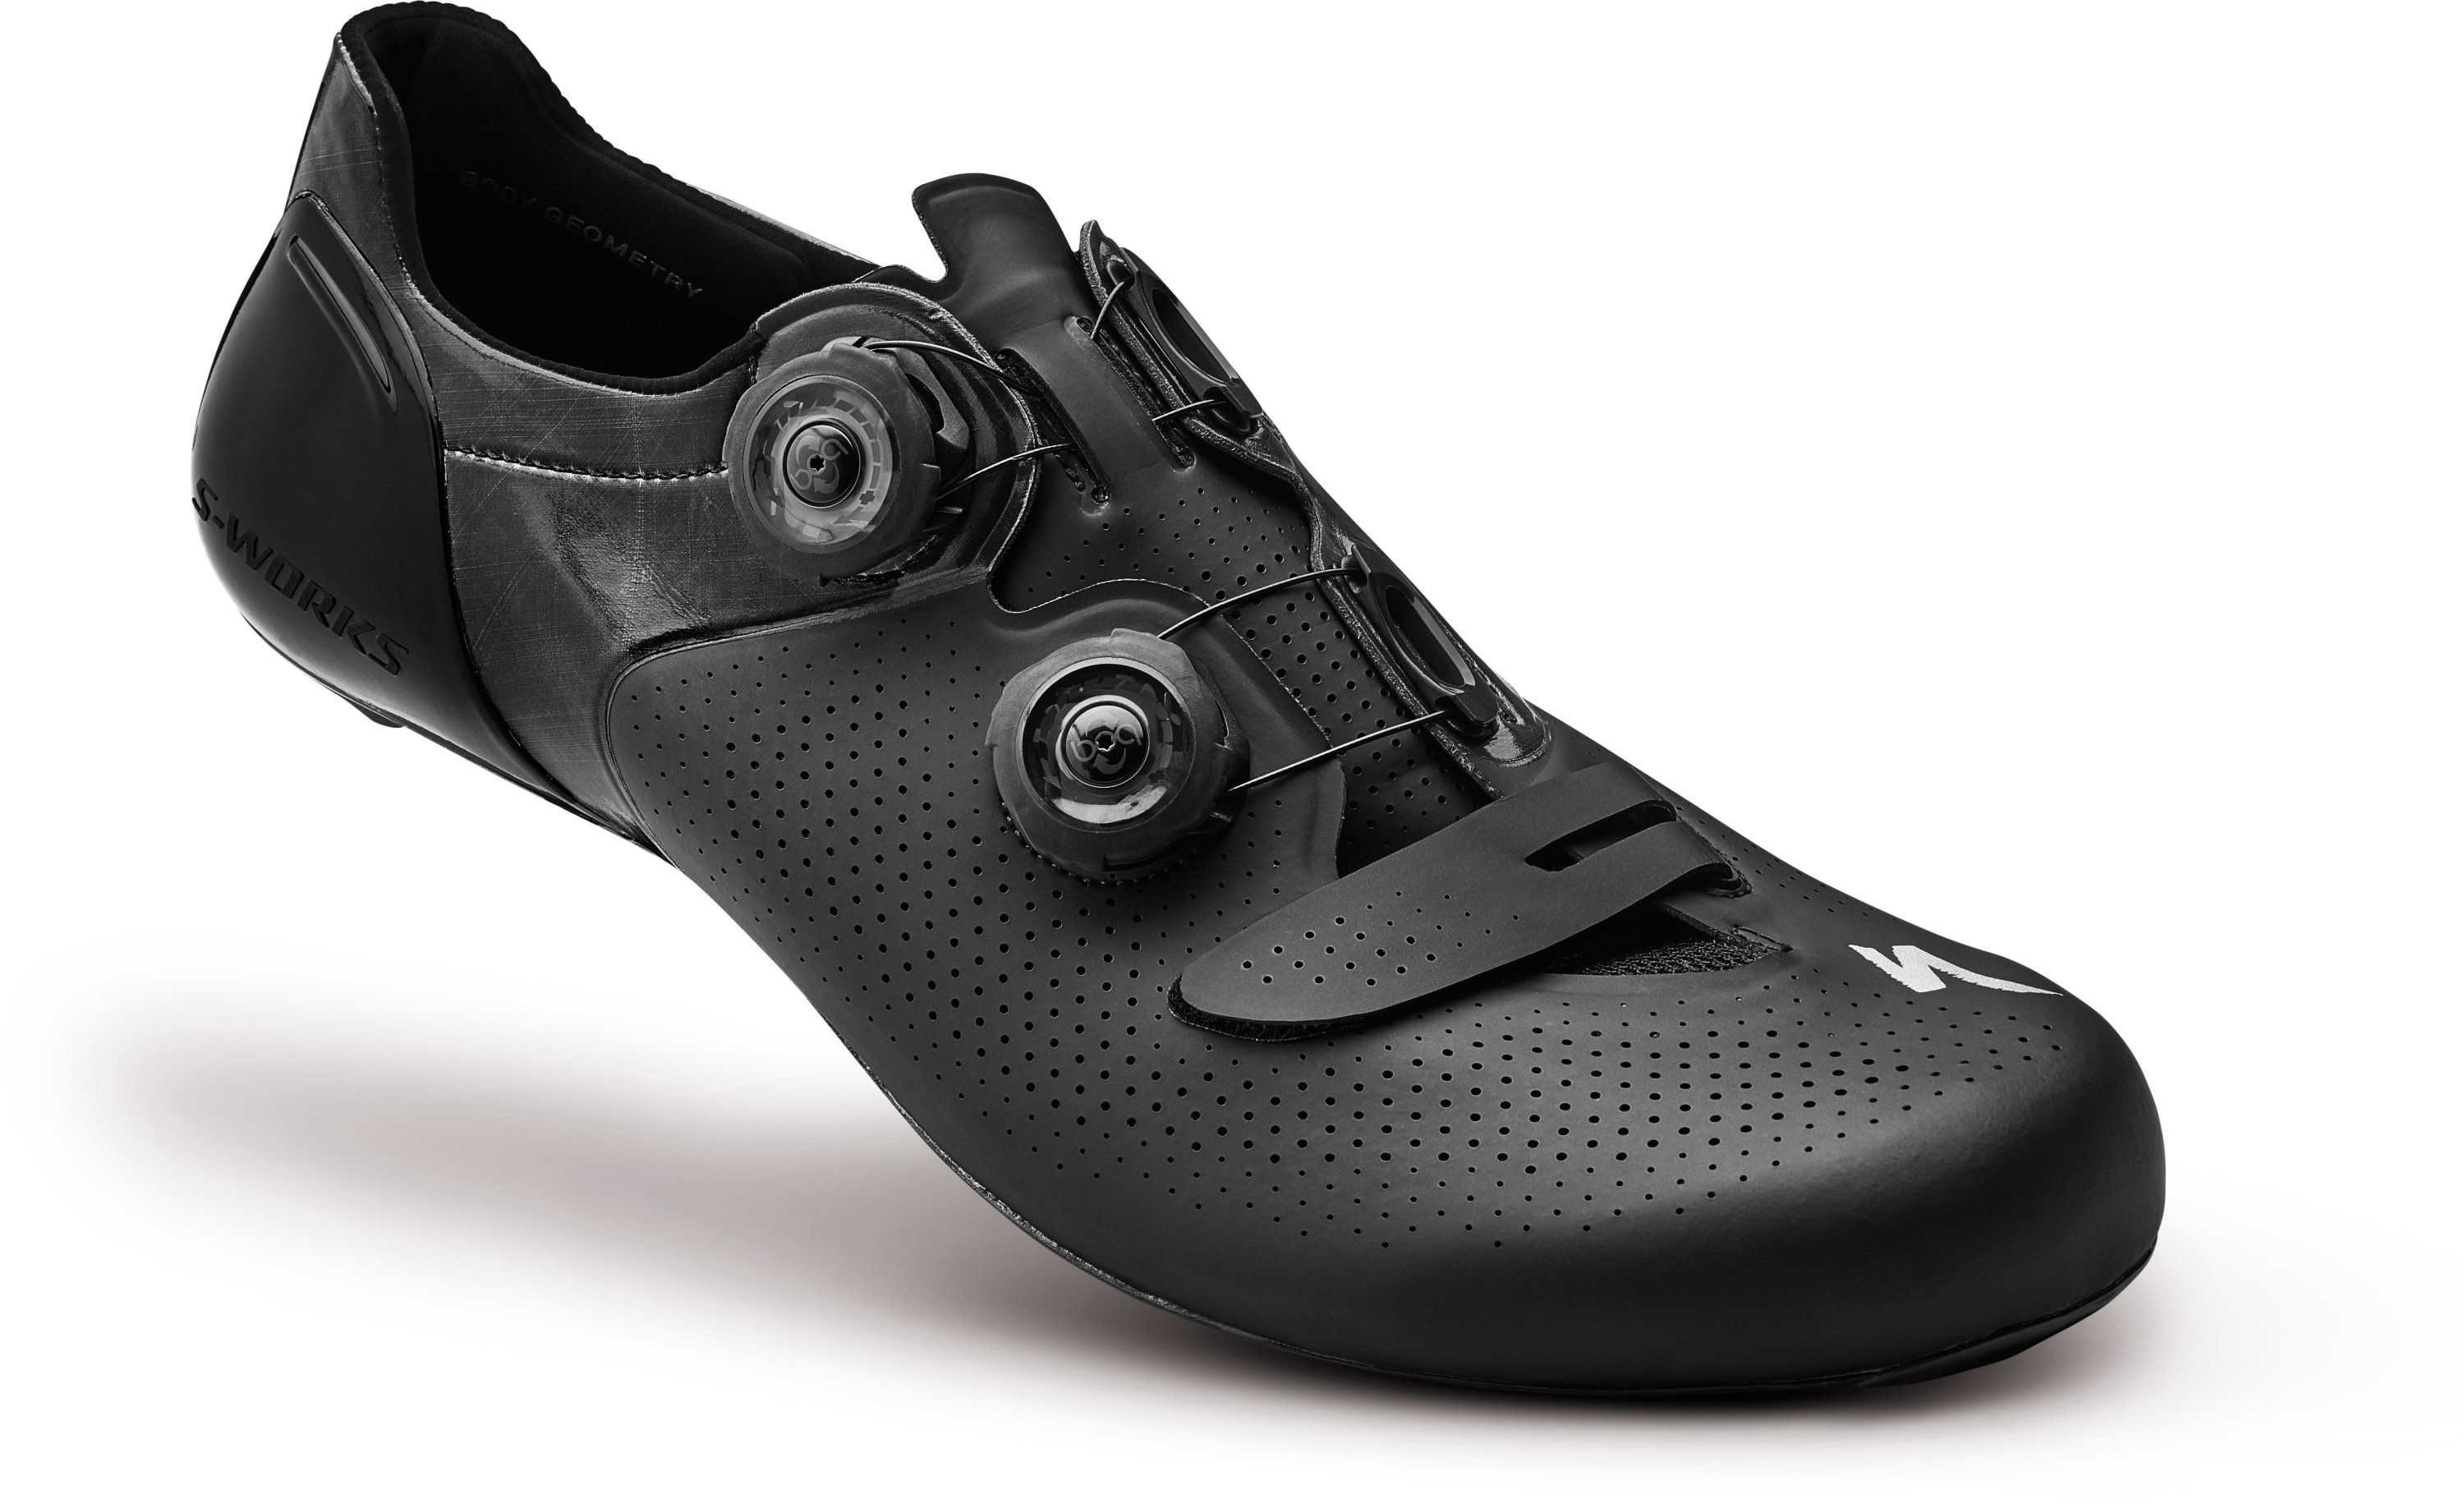 SPECIALIZED SW 6 RD SHOE BLK 46/12.25M/13.75W - Bikedreams & Dustbikes